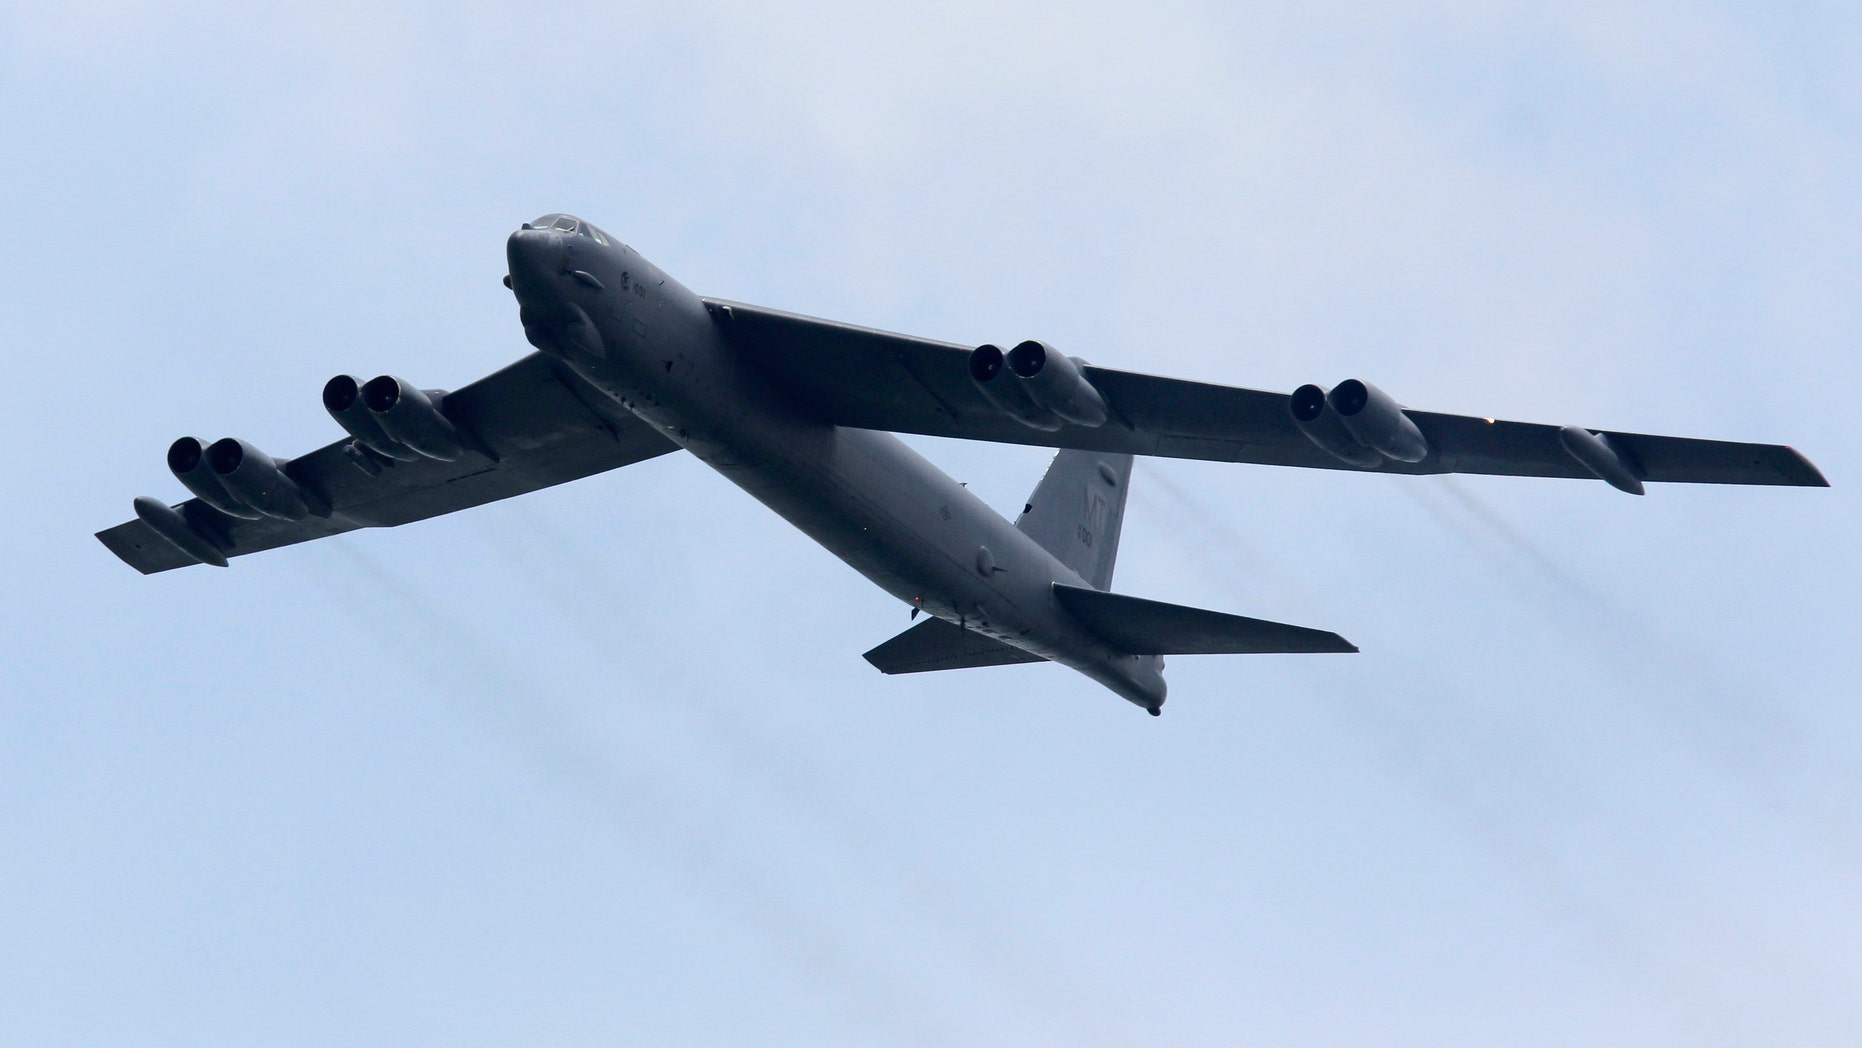 File photo - A Boeing B-52 Stratofortress strategic bomber from the United States Air Force (USAF) Andersen Air Force Base in Guam performs a fly-past during an aerial display at the Singapore Airshow in Singapore February 14, 2012. (REUTERS/Tim Chong)